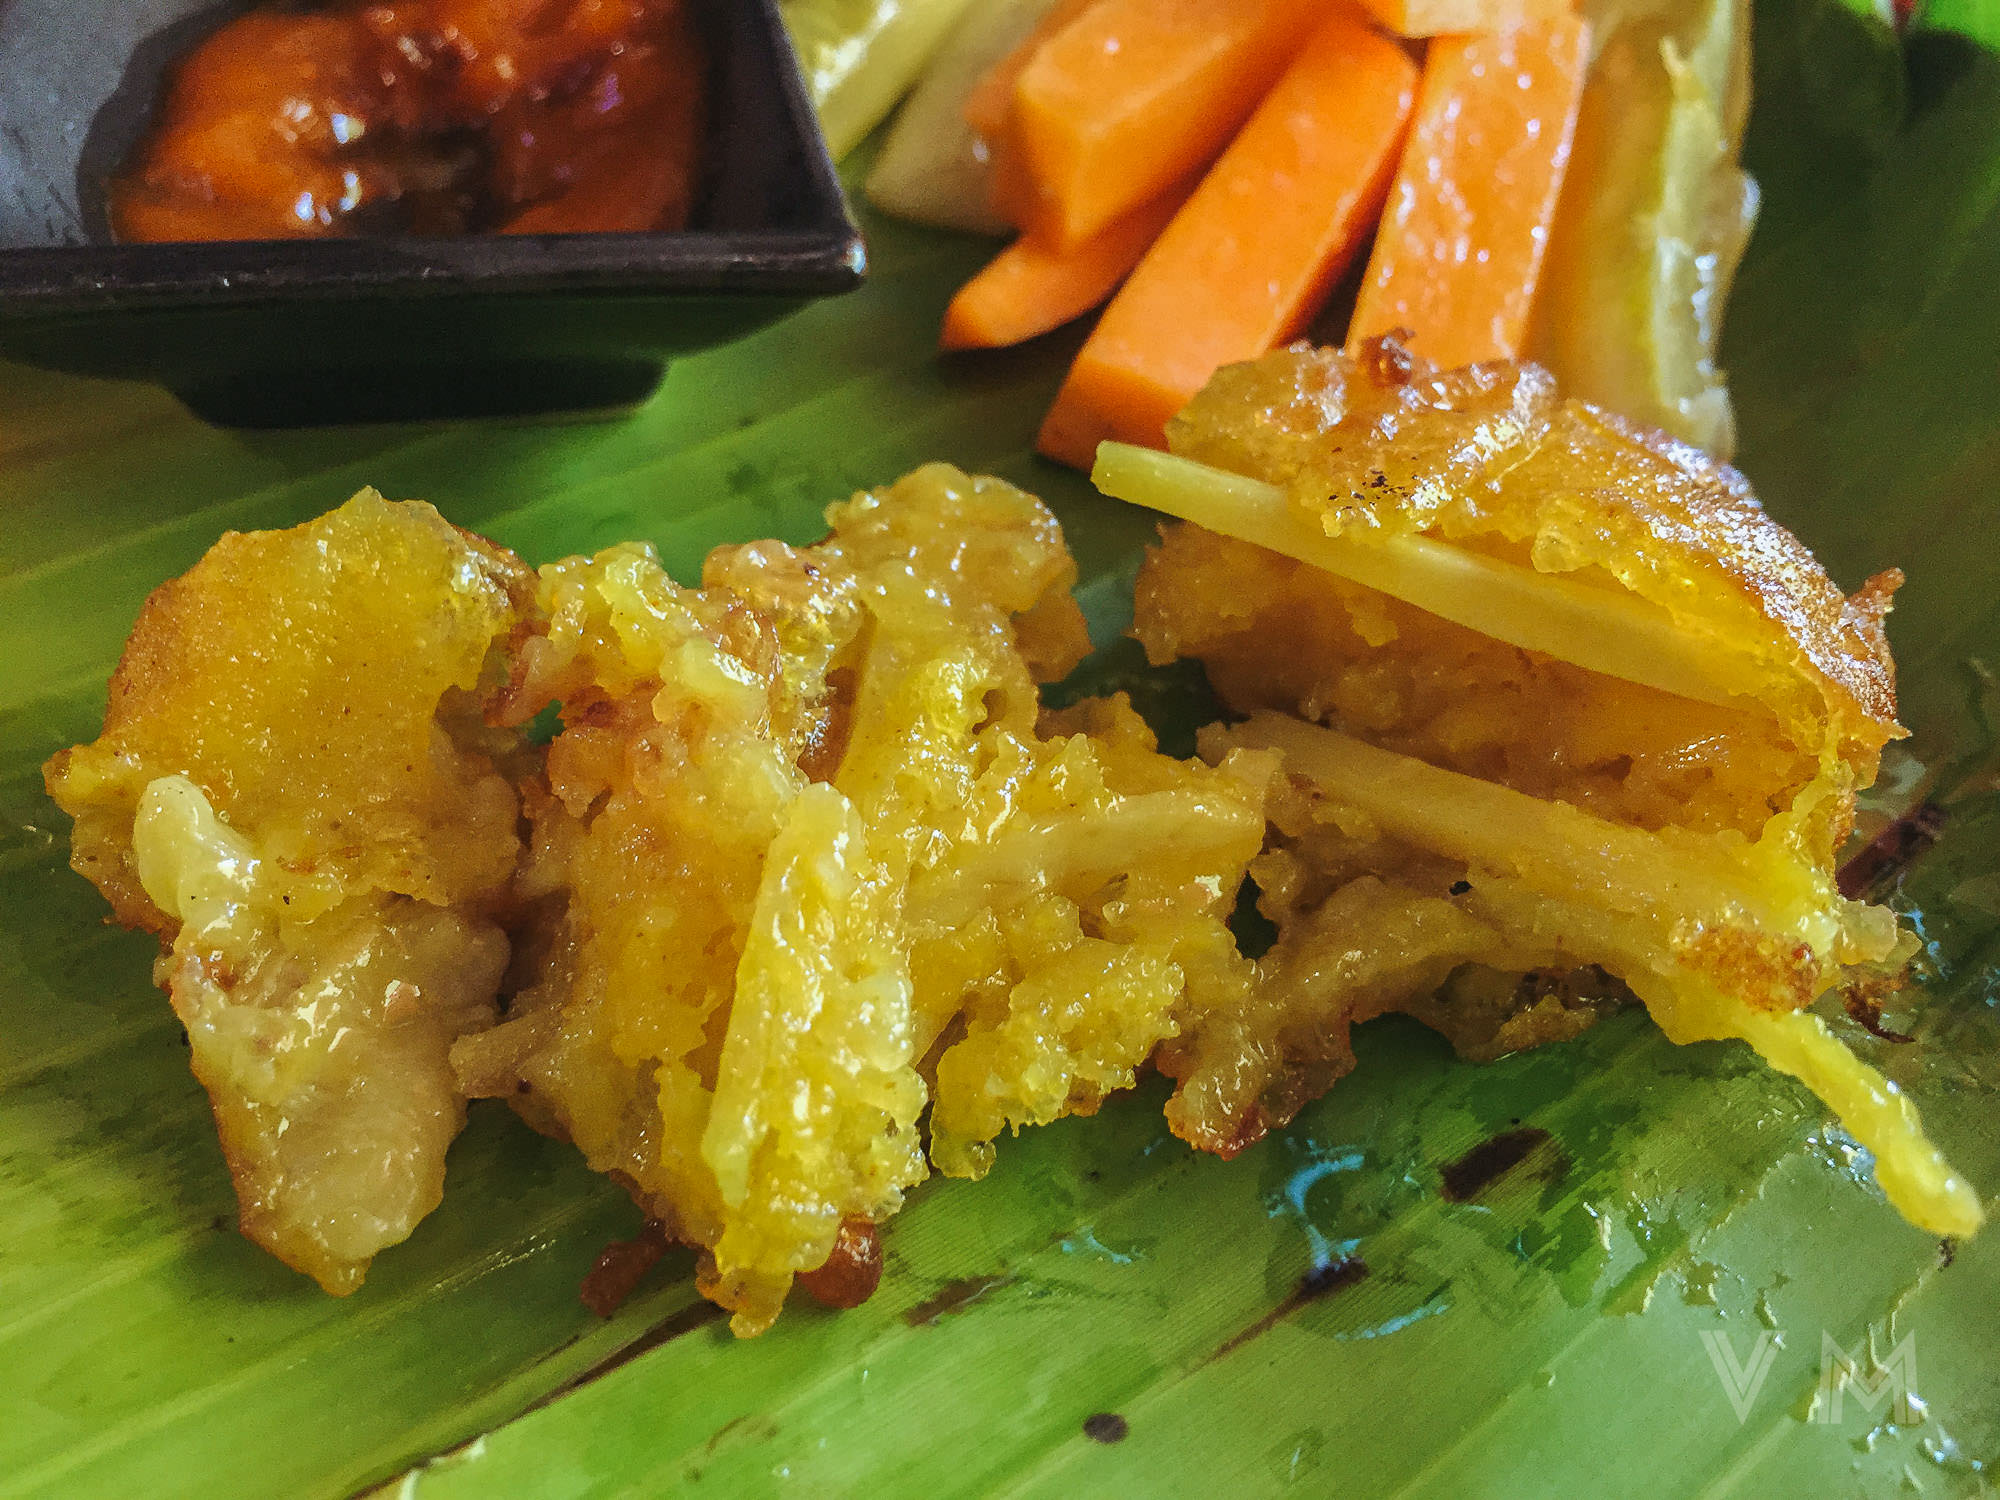 Inside of vegan Banh Chuoi, banana, sweet potato, turmeric fritter from Jalus Vegan Kitchen